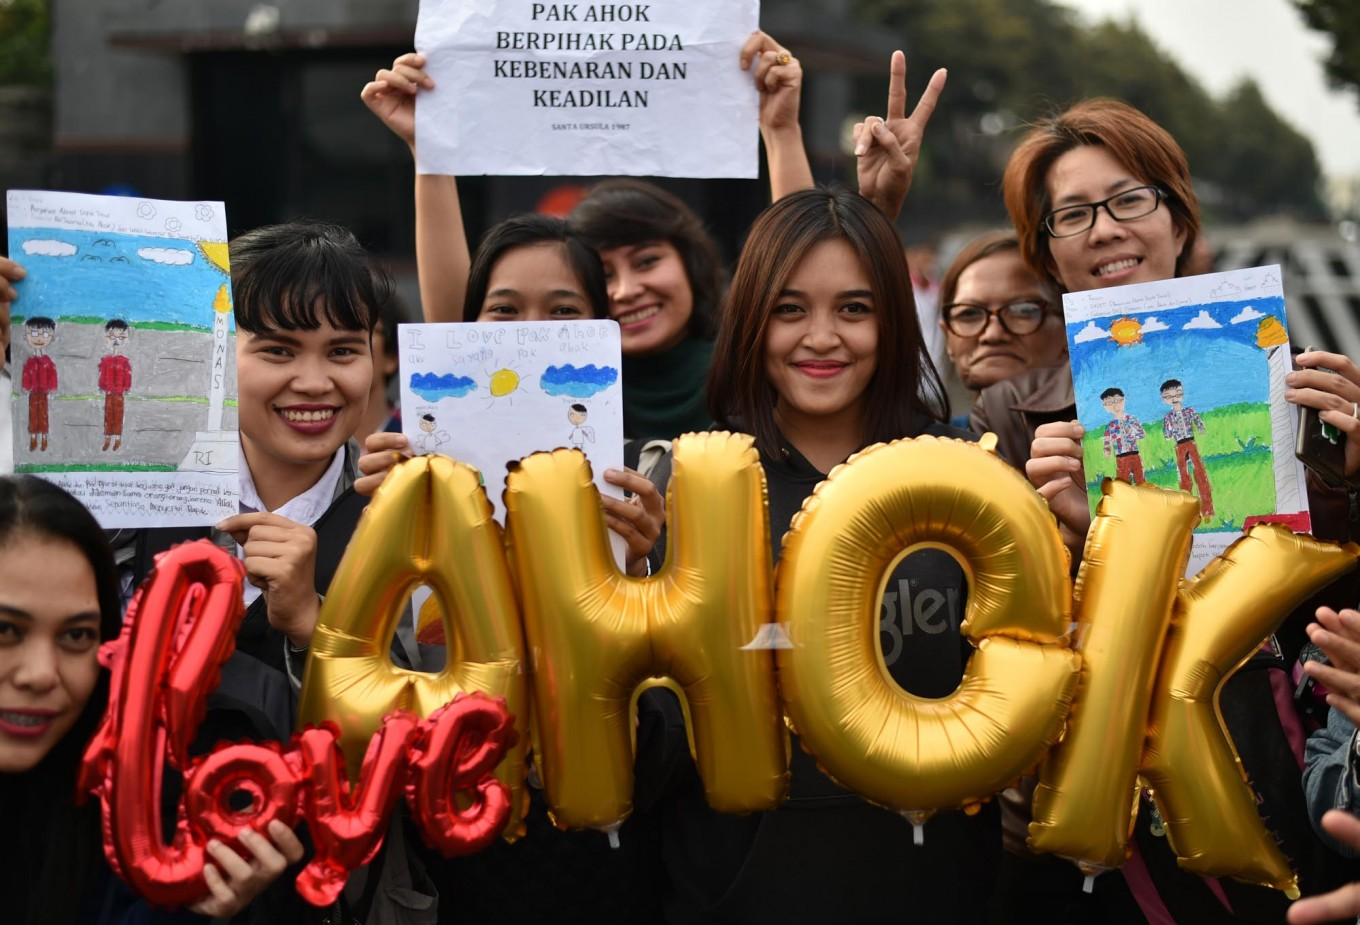 Support mounts for Ahok